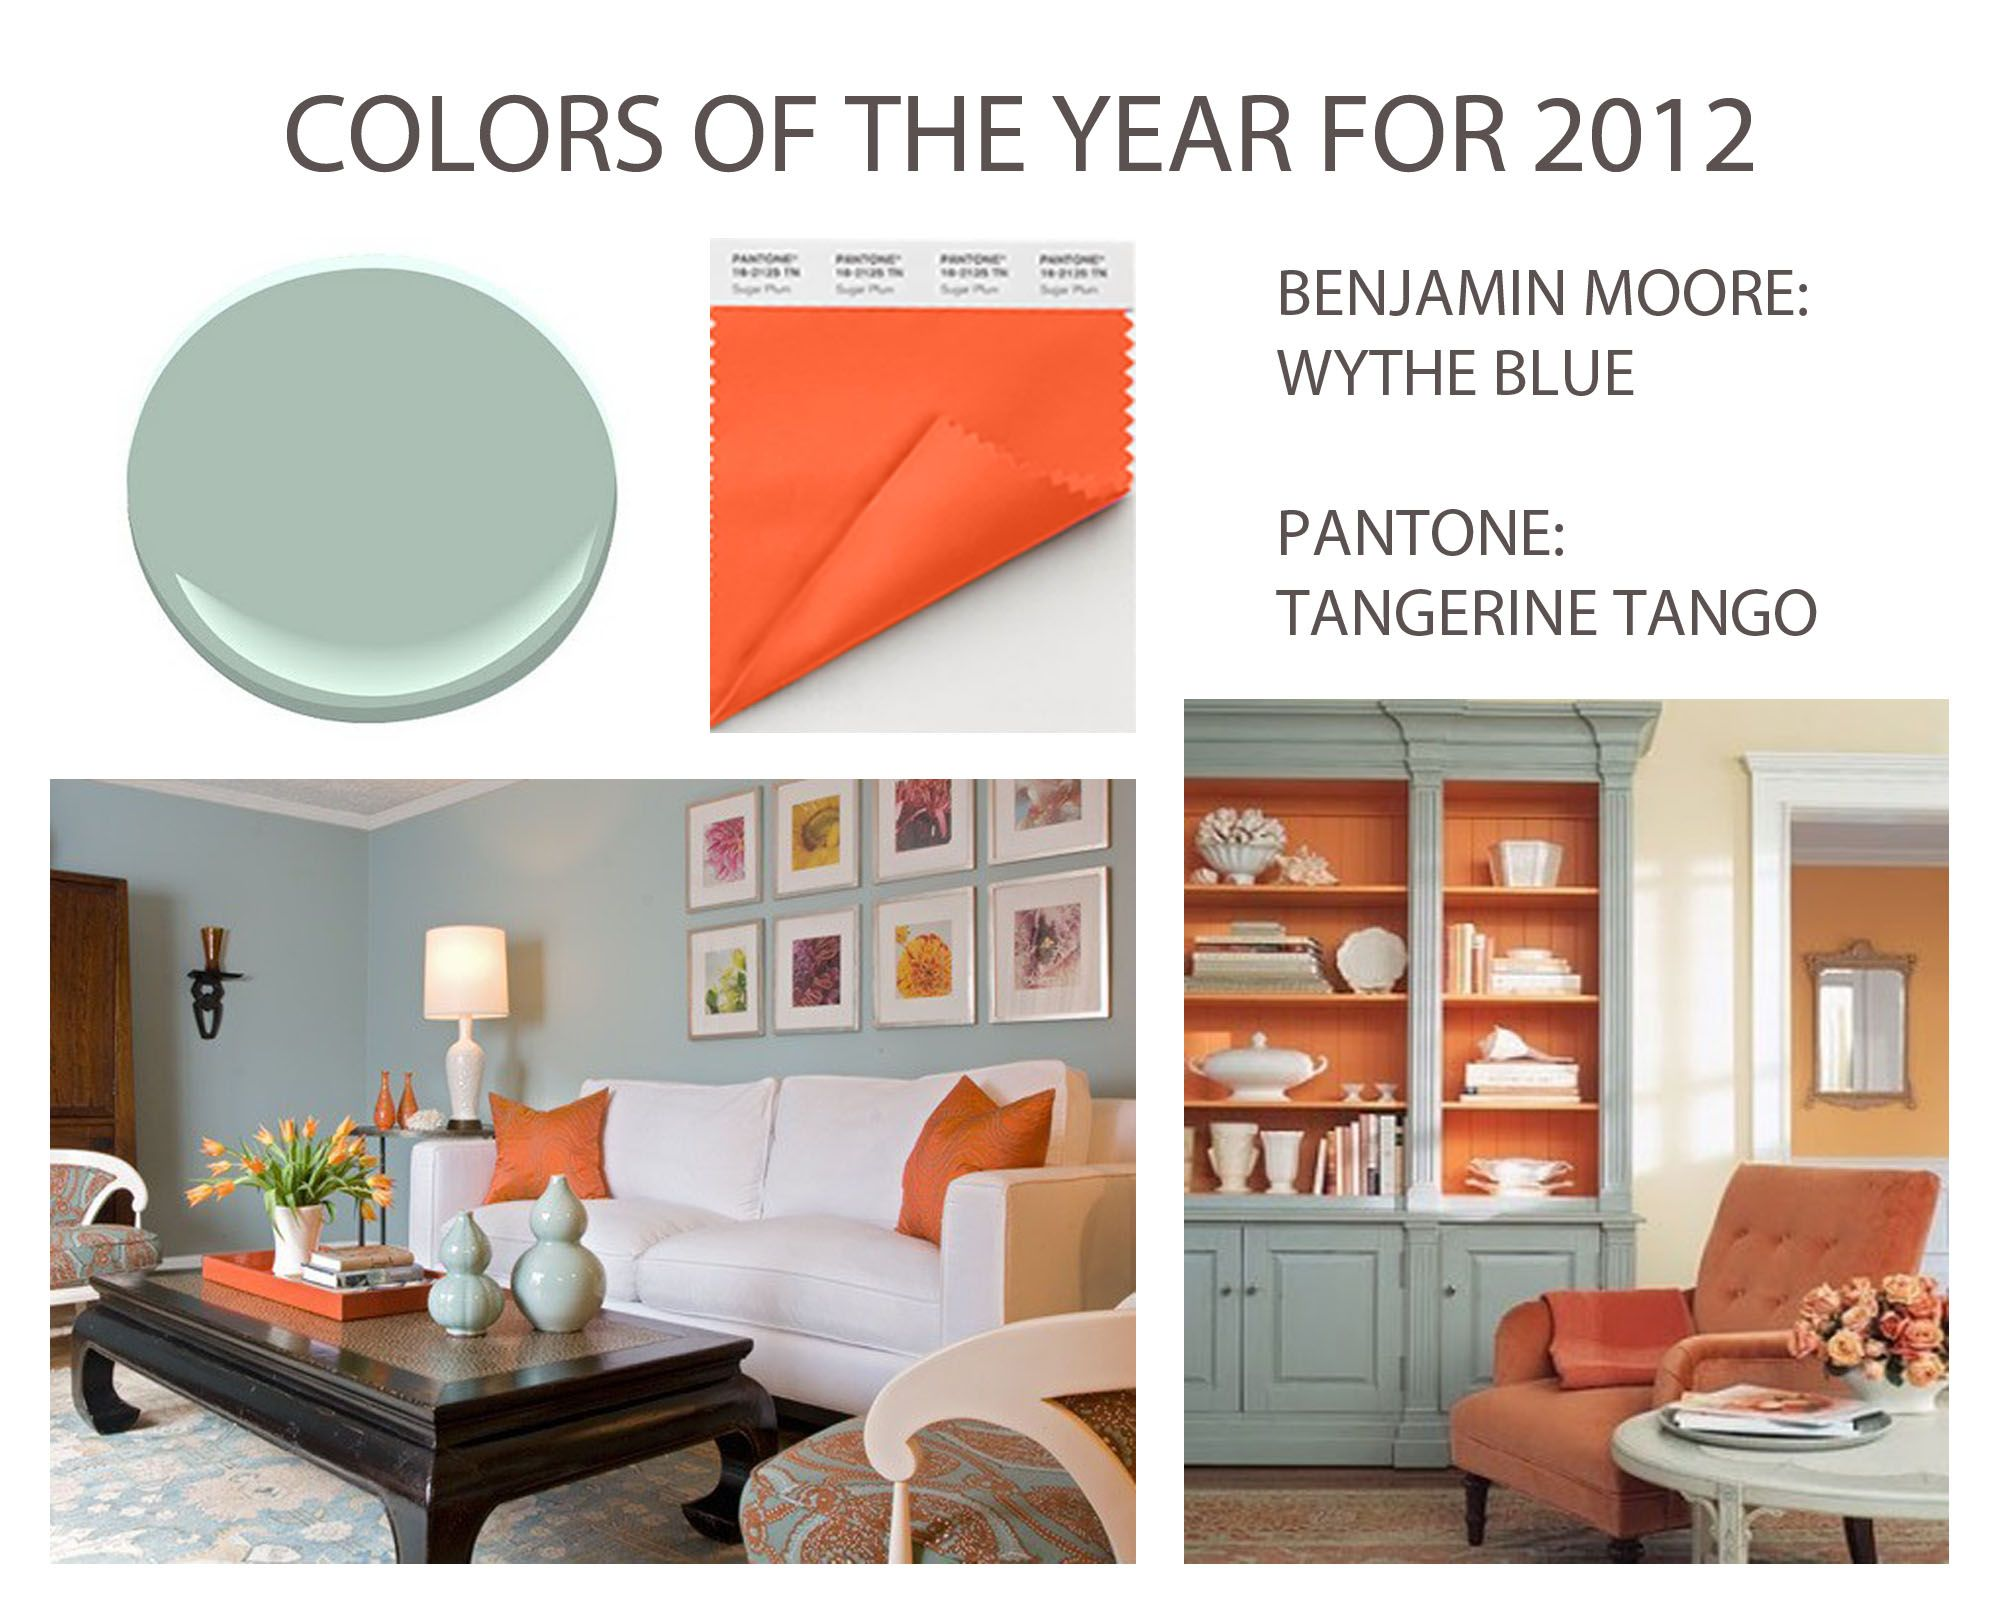 Tangerine Paint Color Colors Of The Year For 2012 Benjamin Moore Wythe Blue & Pantone